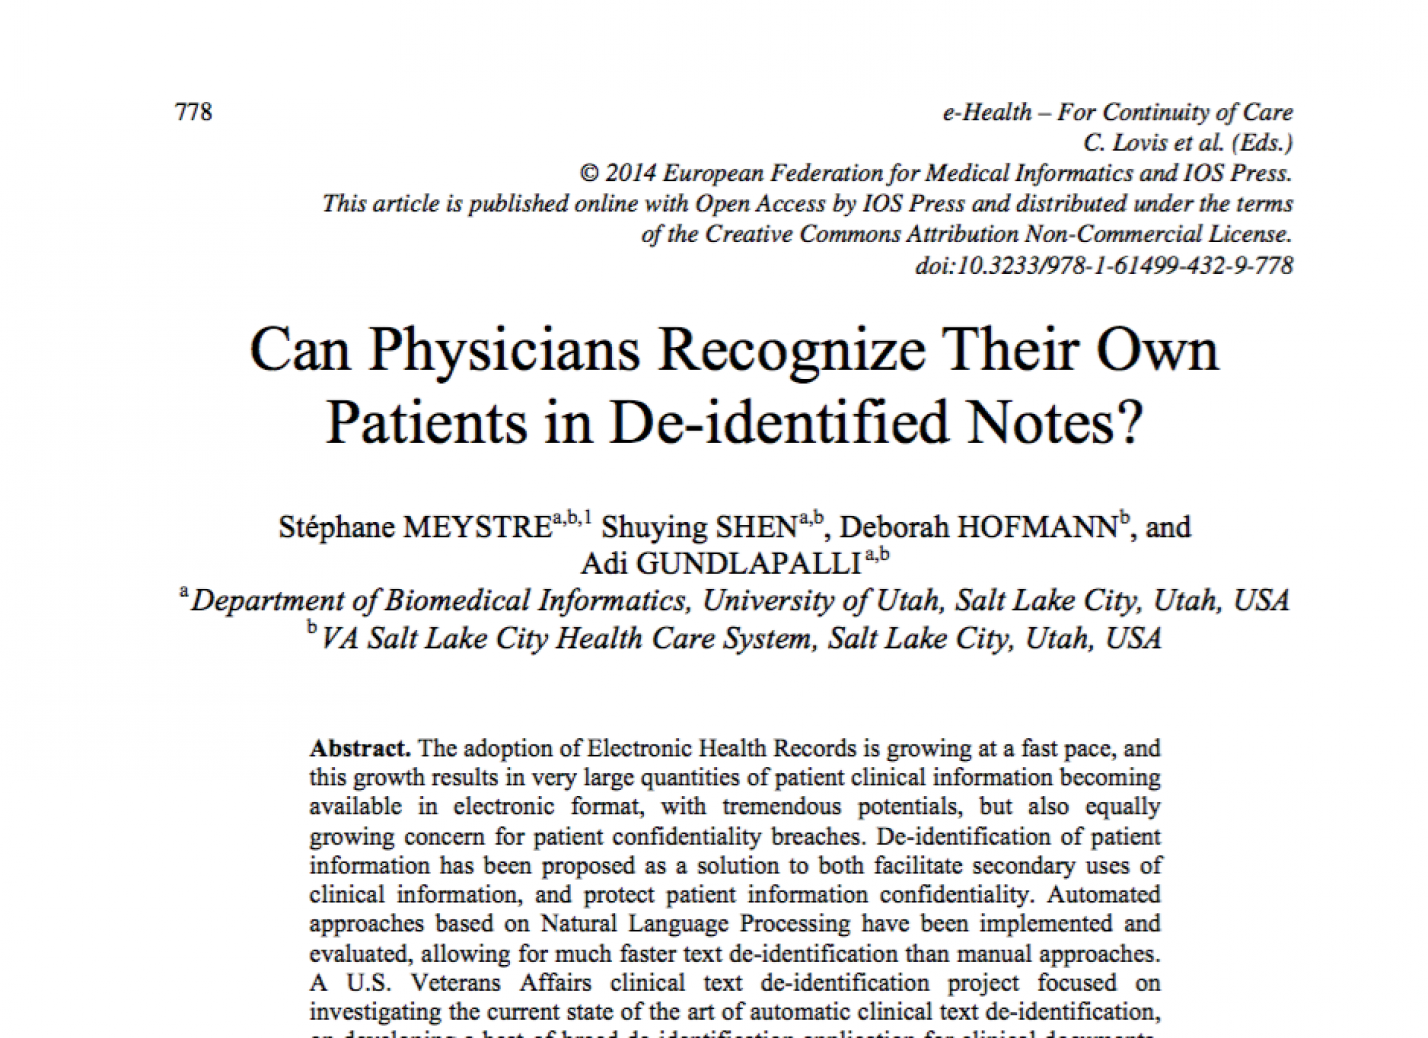 Can Physicians Recognize Their Own Patients in De-identified Notes?